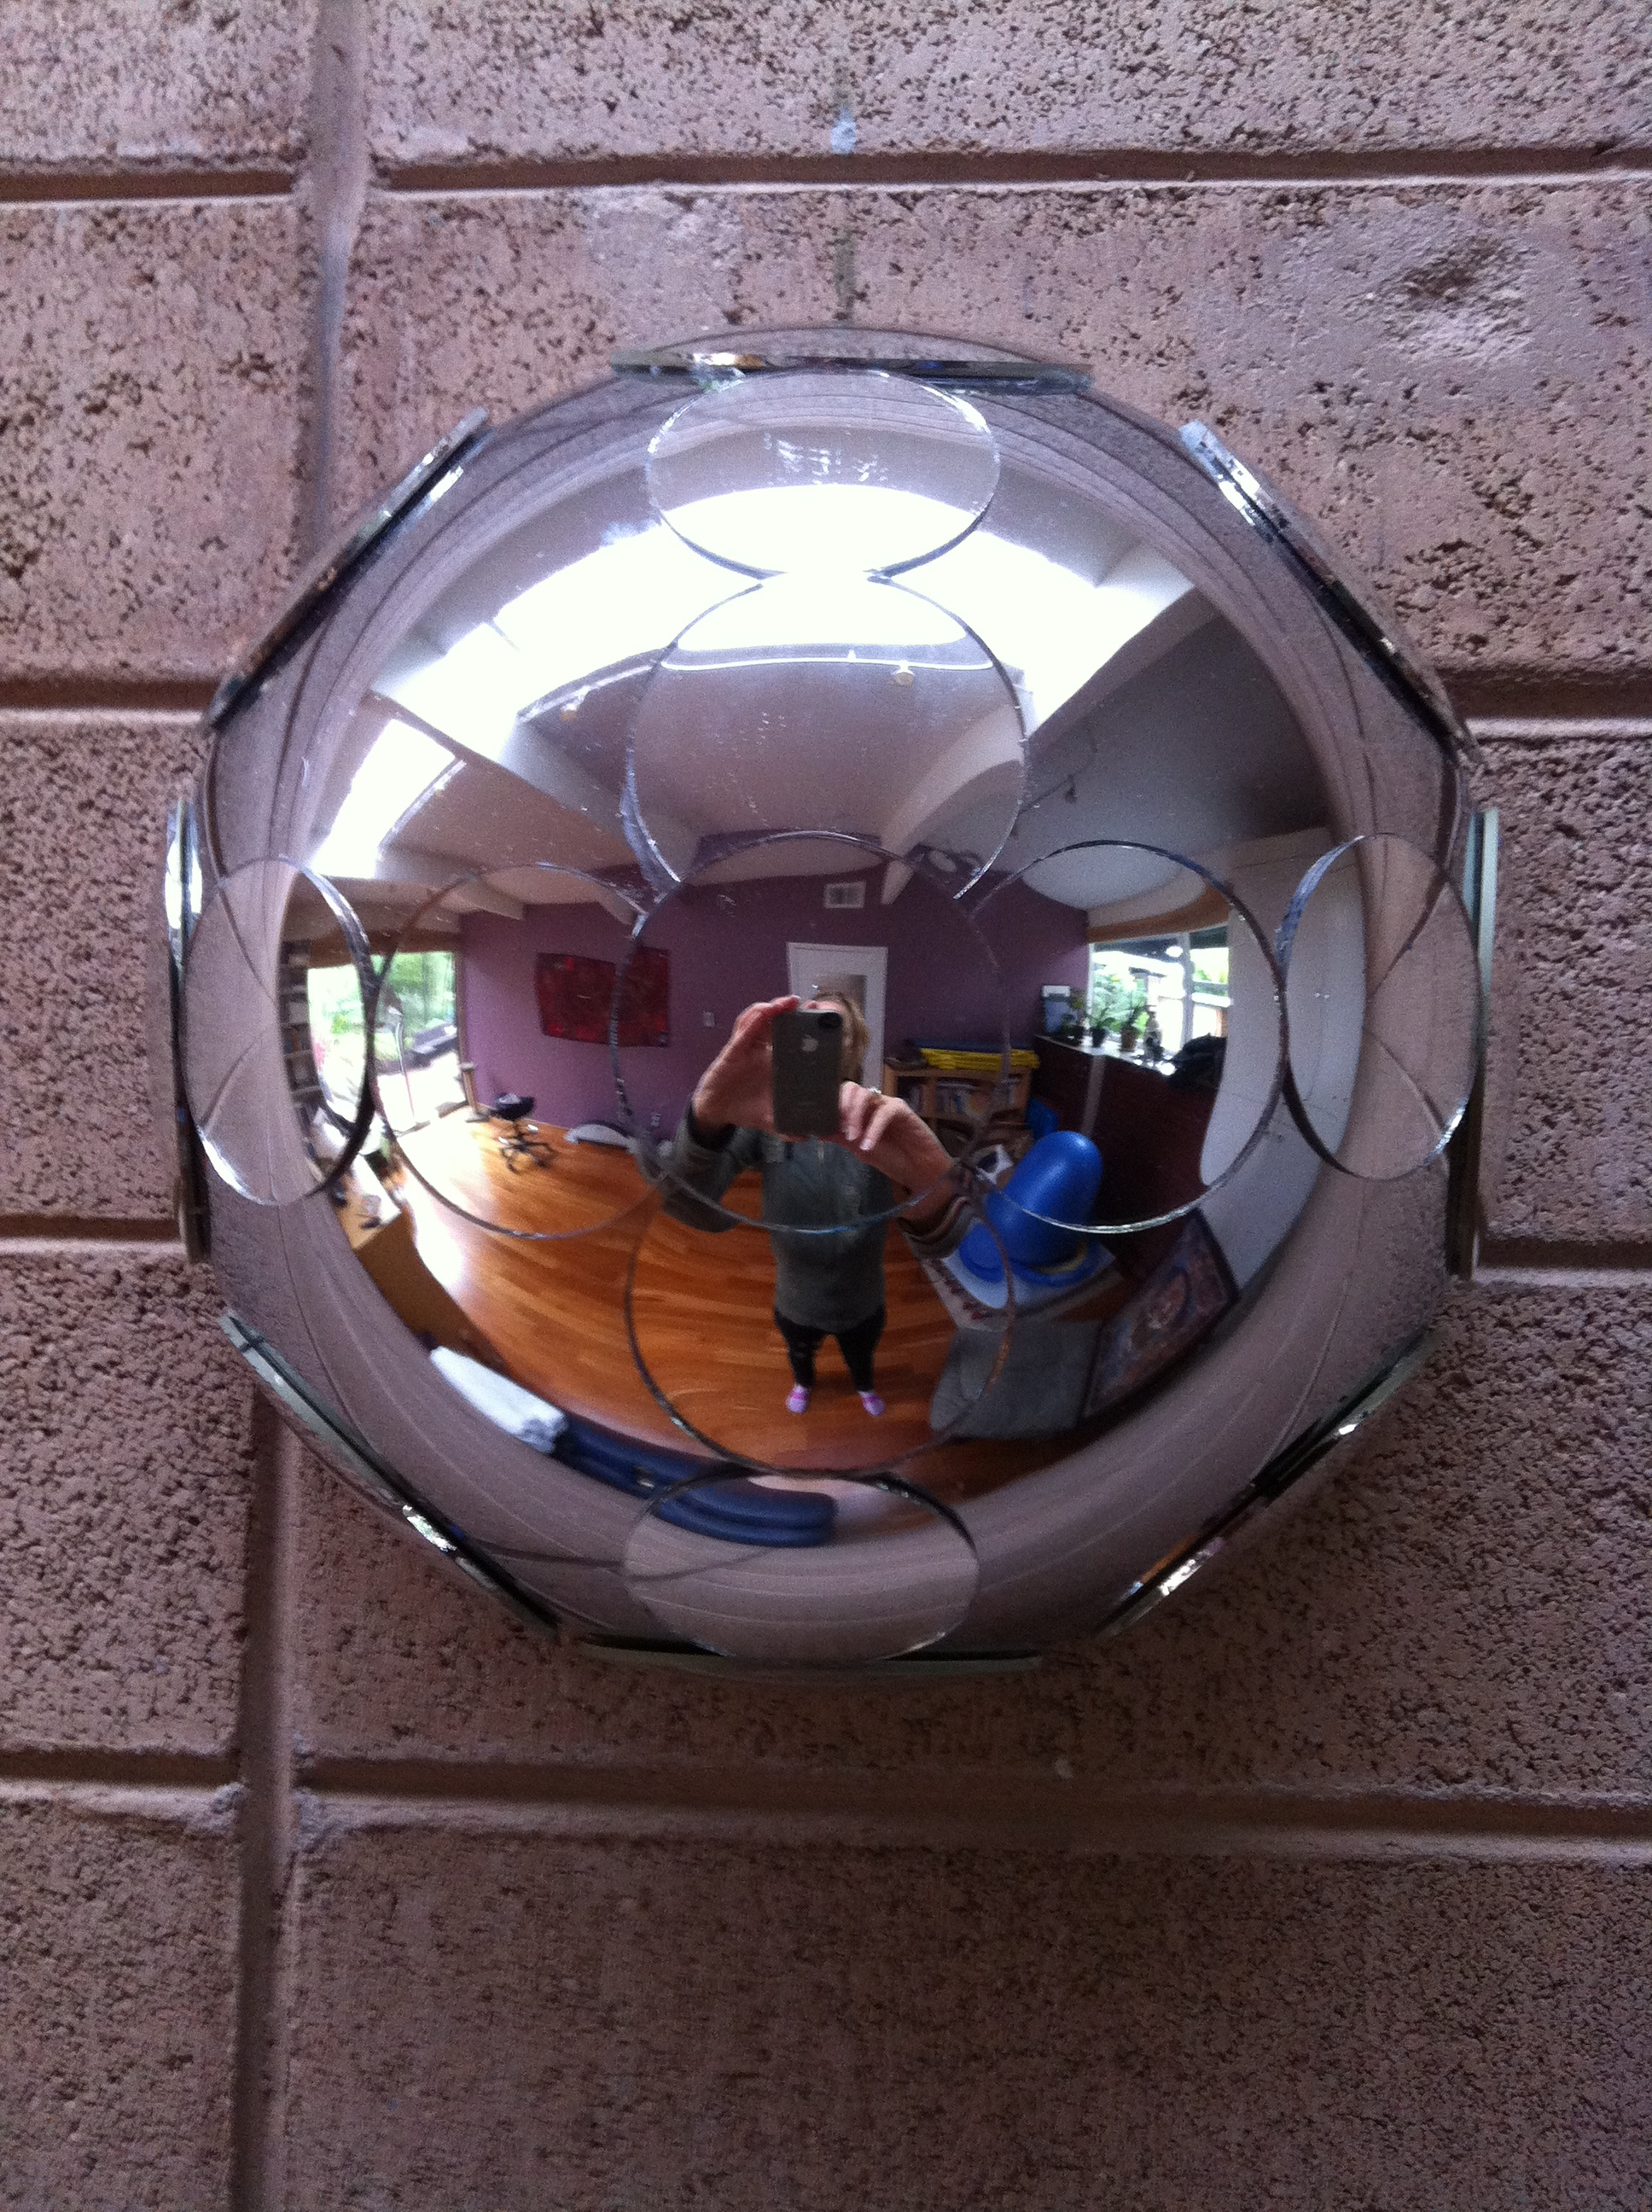 """Facet (Compound I/eye)   Stainless steel, convex mirror. 8.5"""" diameter x 5"""" depth  Created from Compound eye/I components.  Private Collection."""